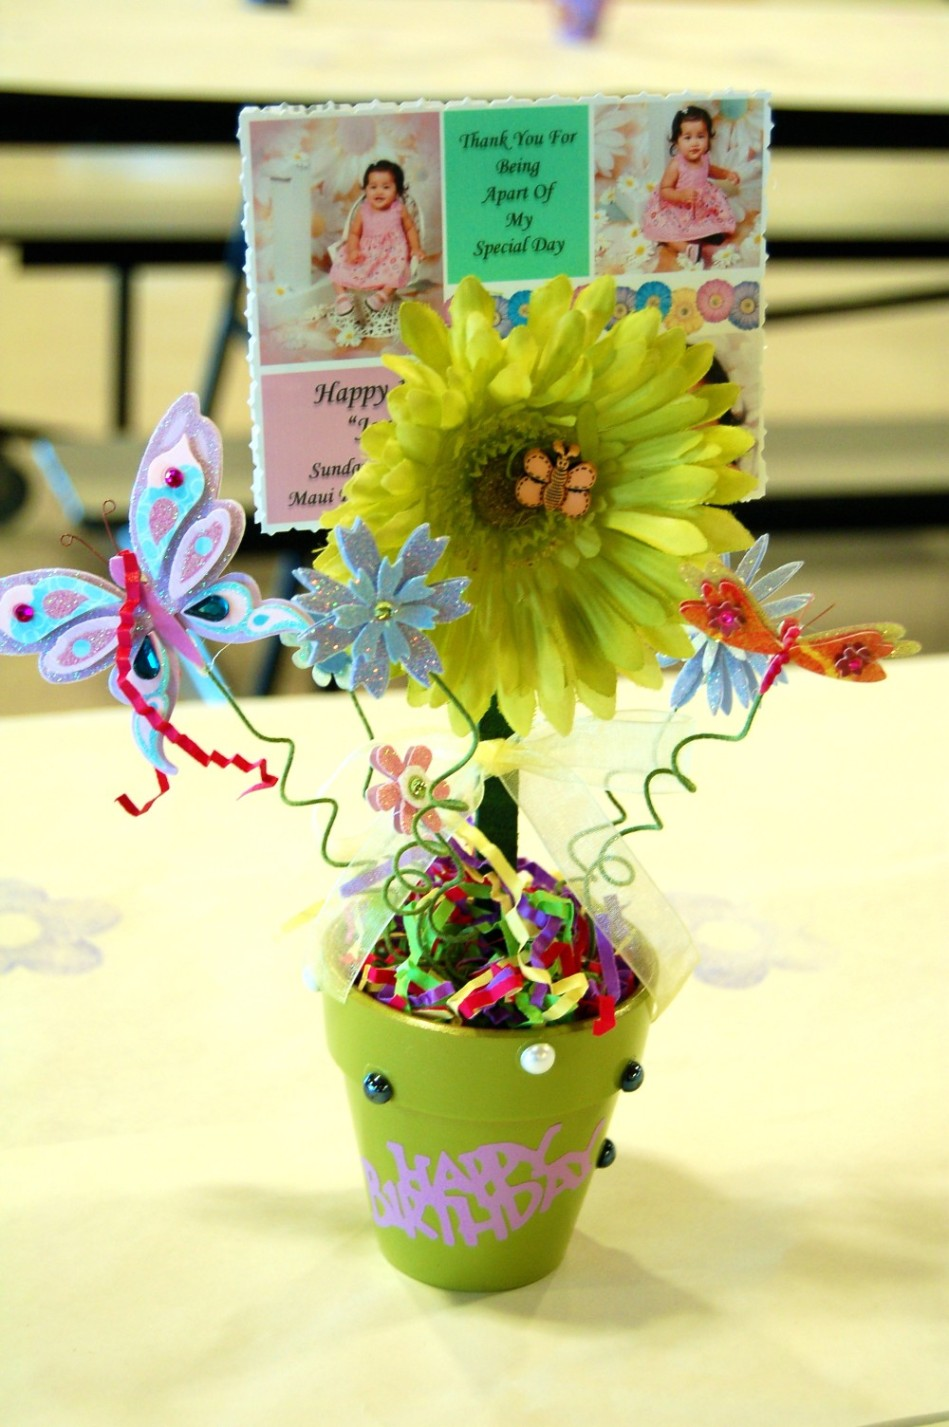 Jordyn rhys flower birthday centerpiece dsc sweet